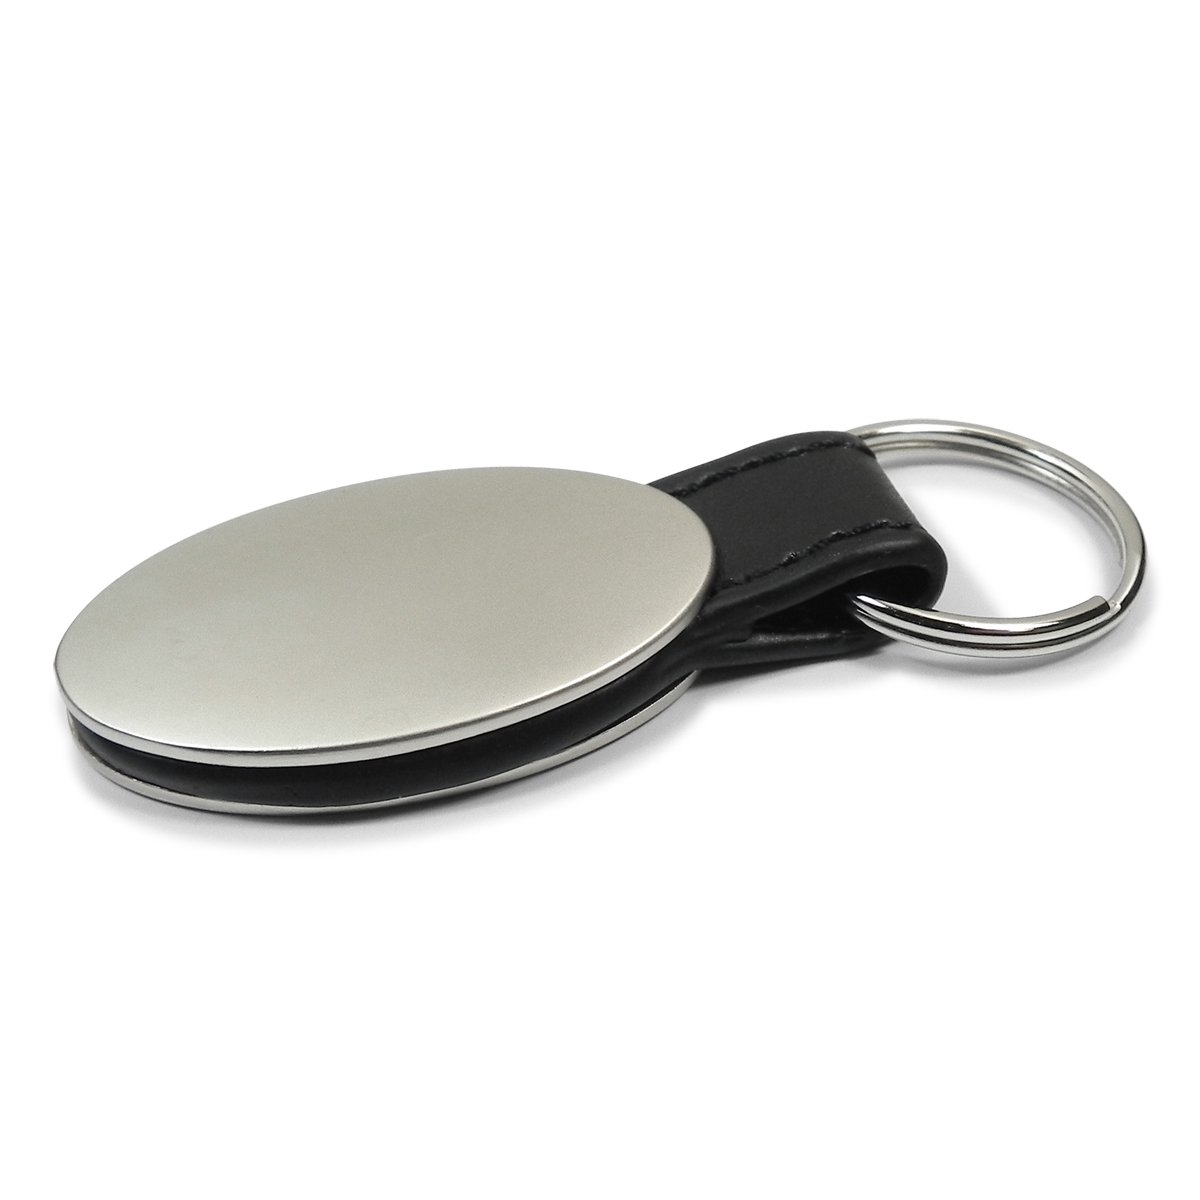 Ford Mustang 50 Years Anniversary Oval Style Metal Key Chain Key Fob AG-KC3210-MUS5Y INC Au-Tomotive Gold